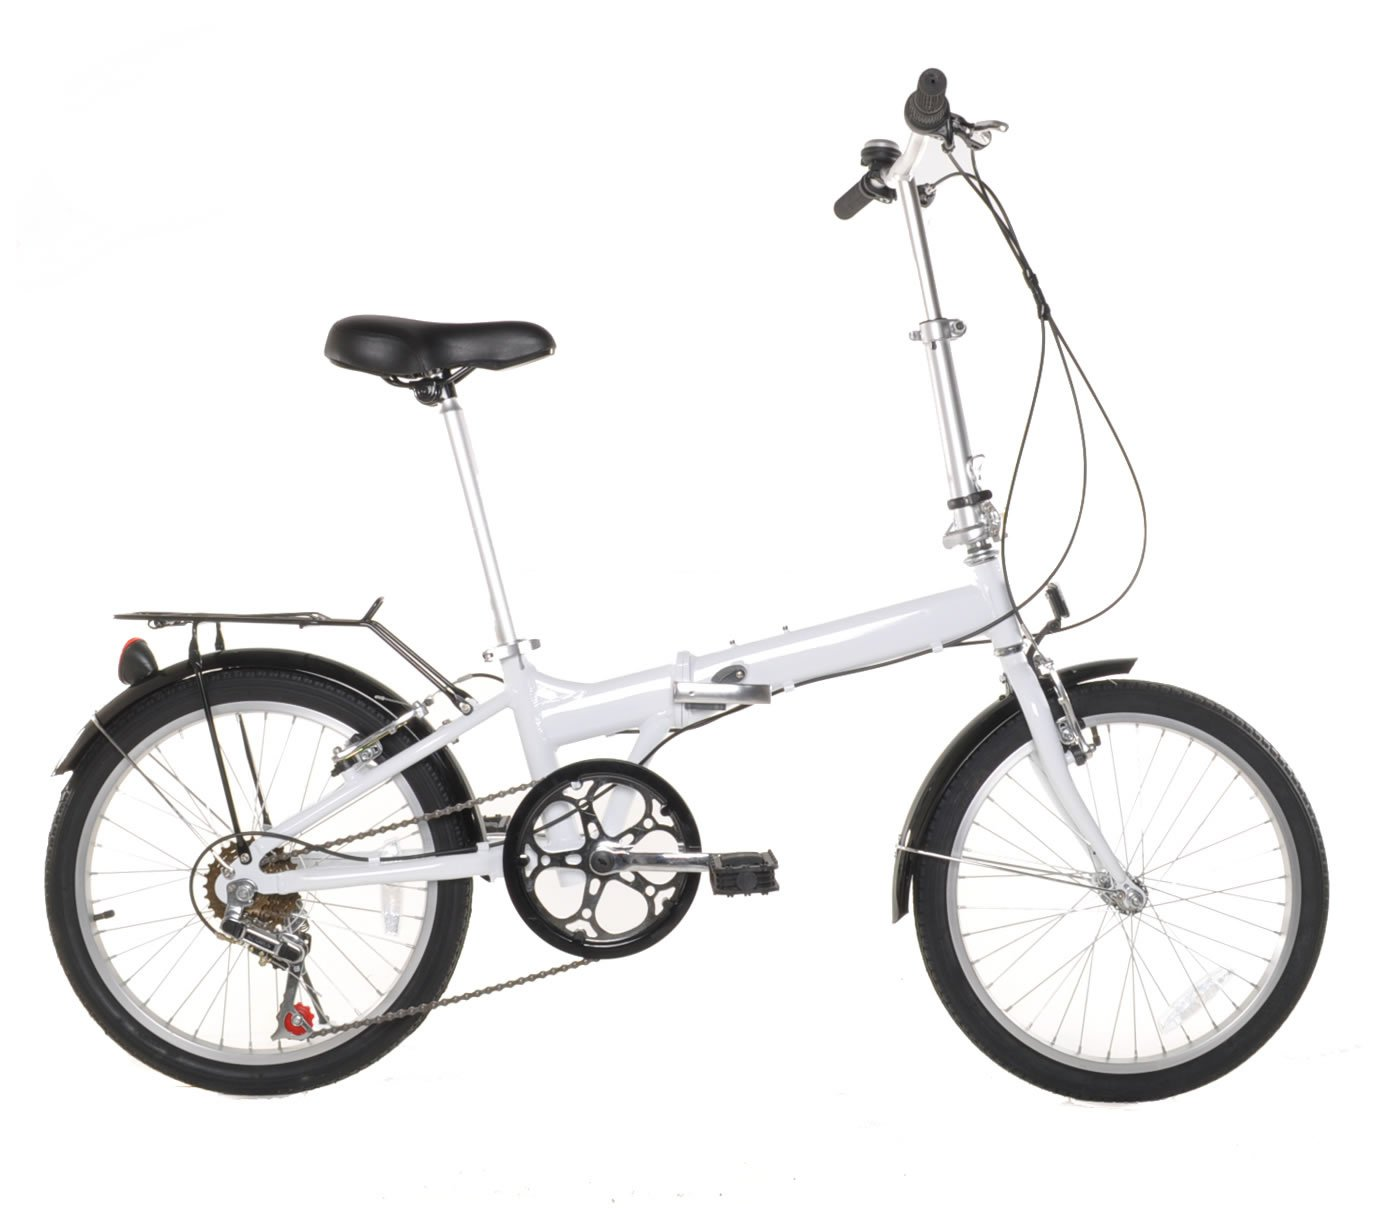 Top 10 Best Folding Bikes Reviews in 2020 6